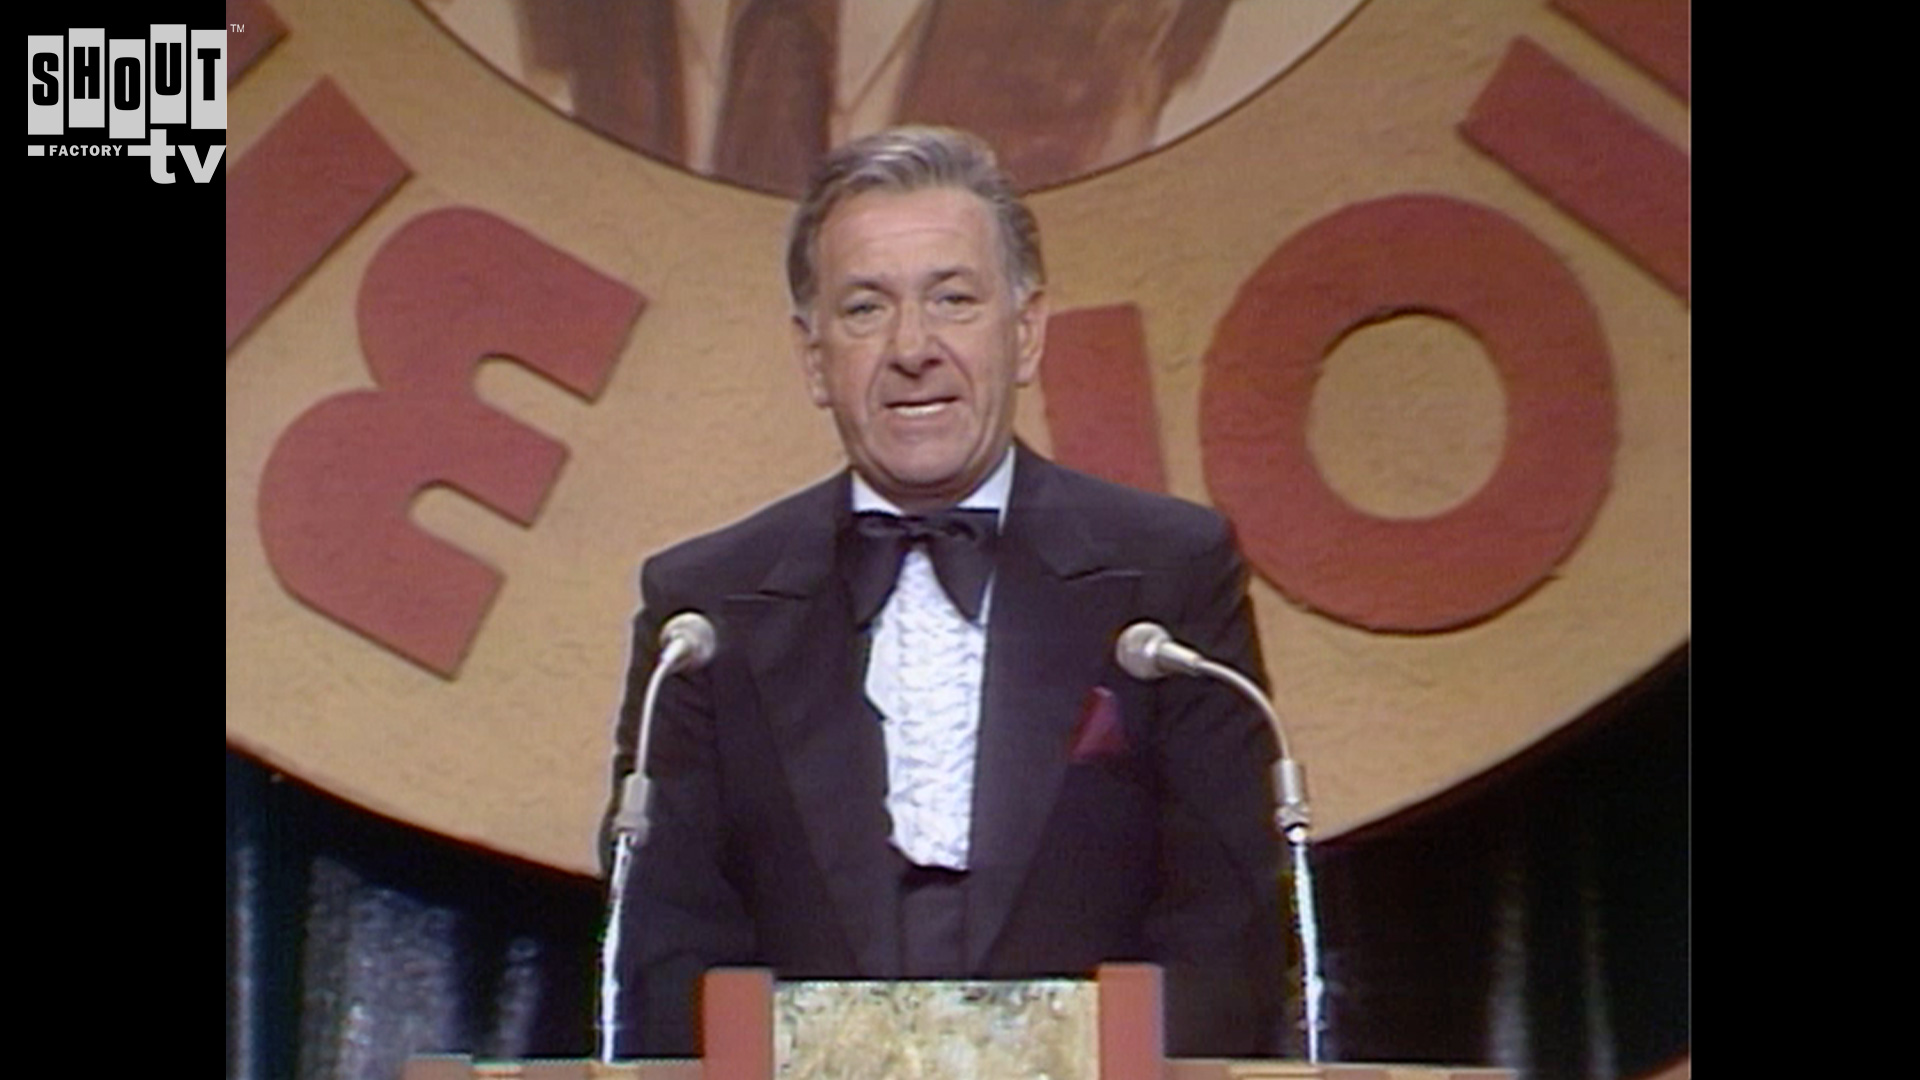 The Dean Martin Celebrity Roasts: Jack Klugman (3/17/78)